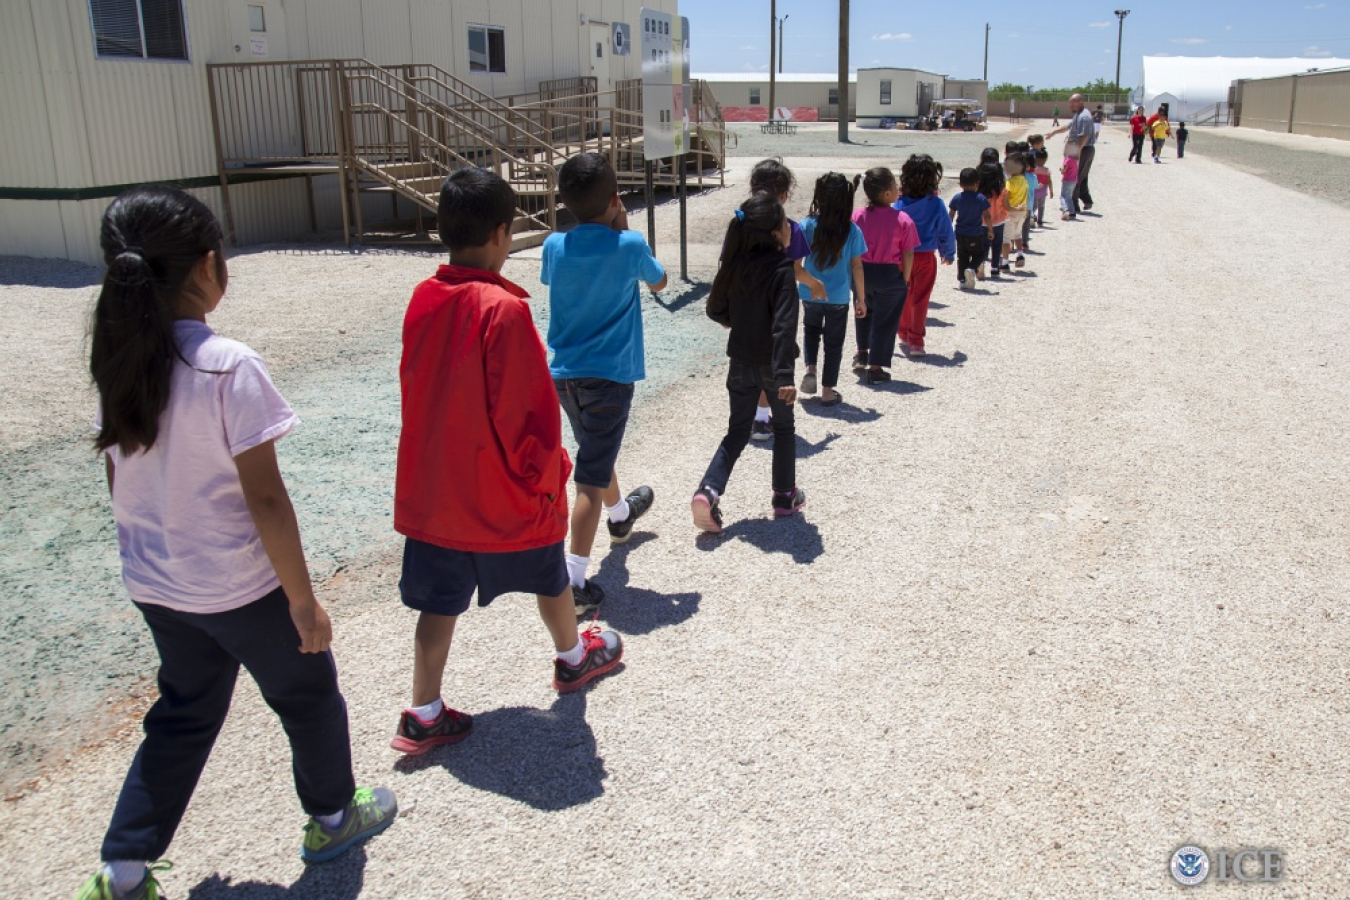 Children walk to classrooms at the South Texas Family Residential Center